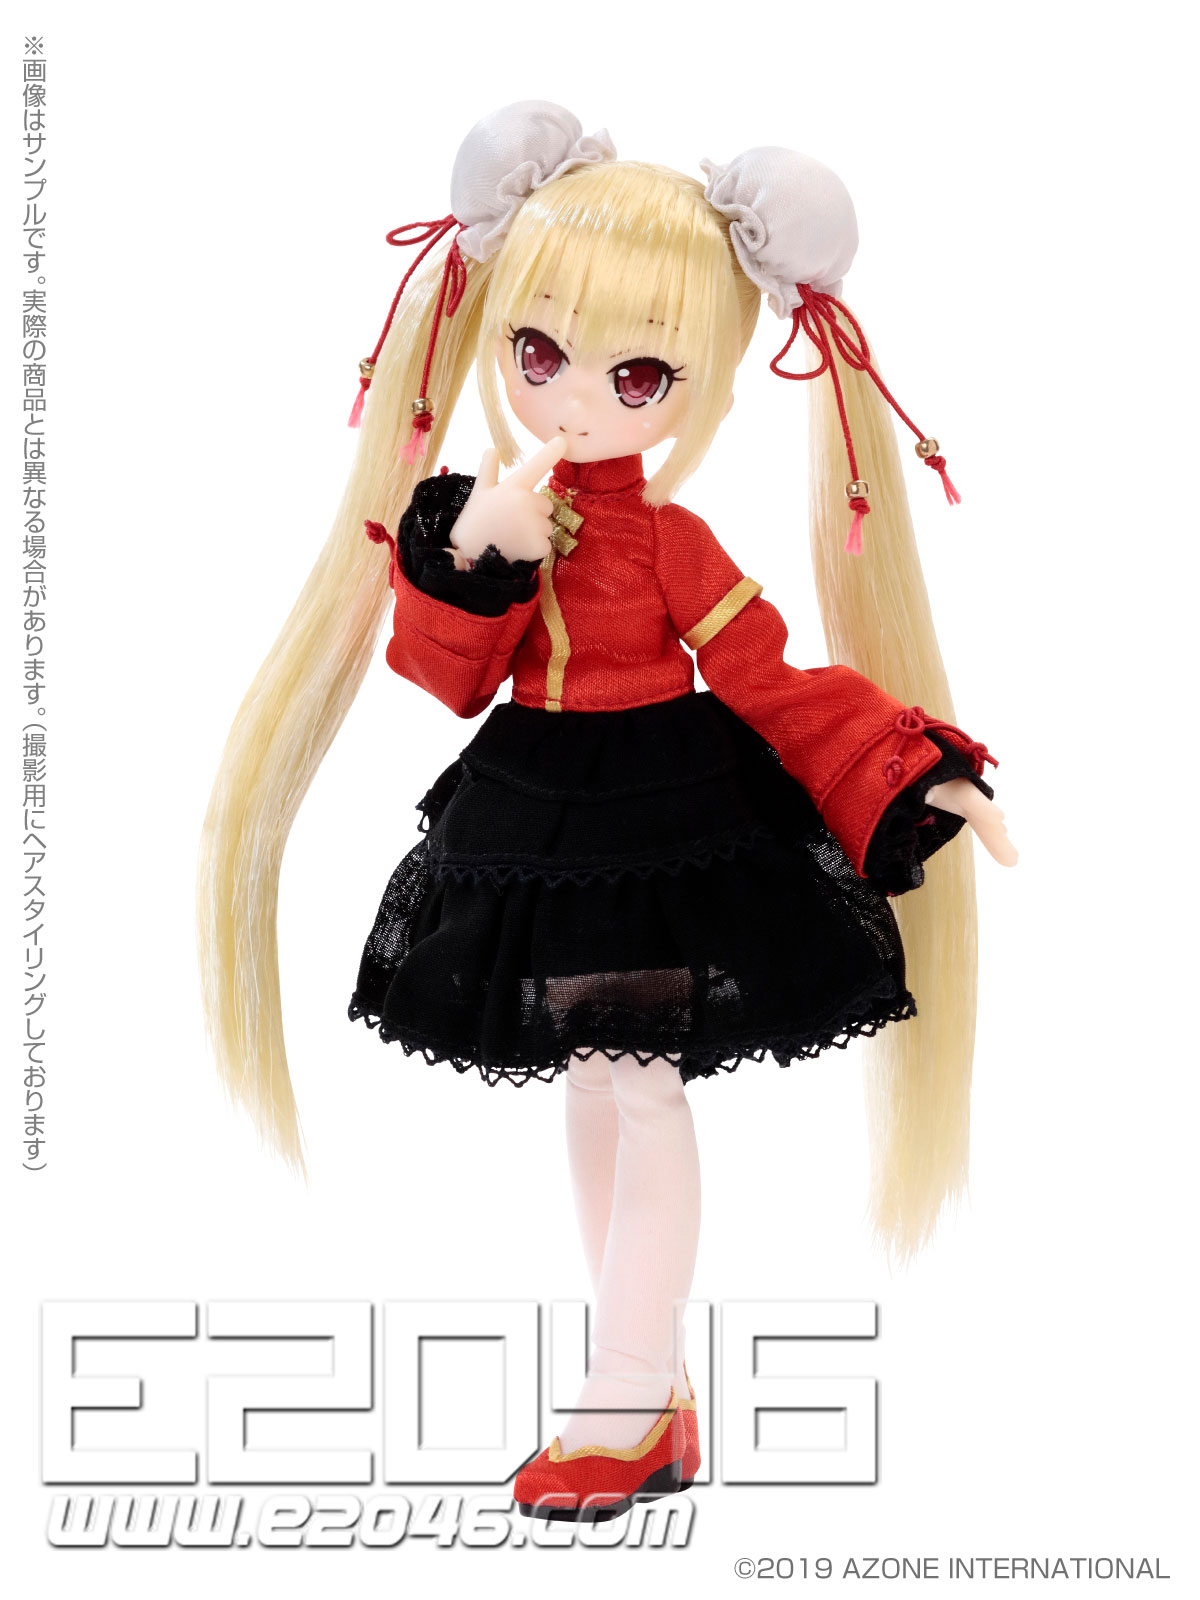 Luo (DOLL)